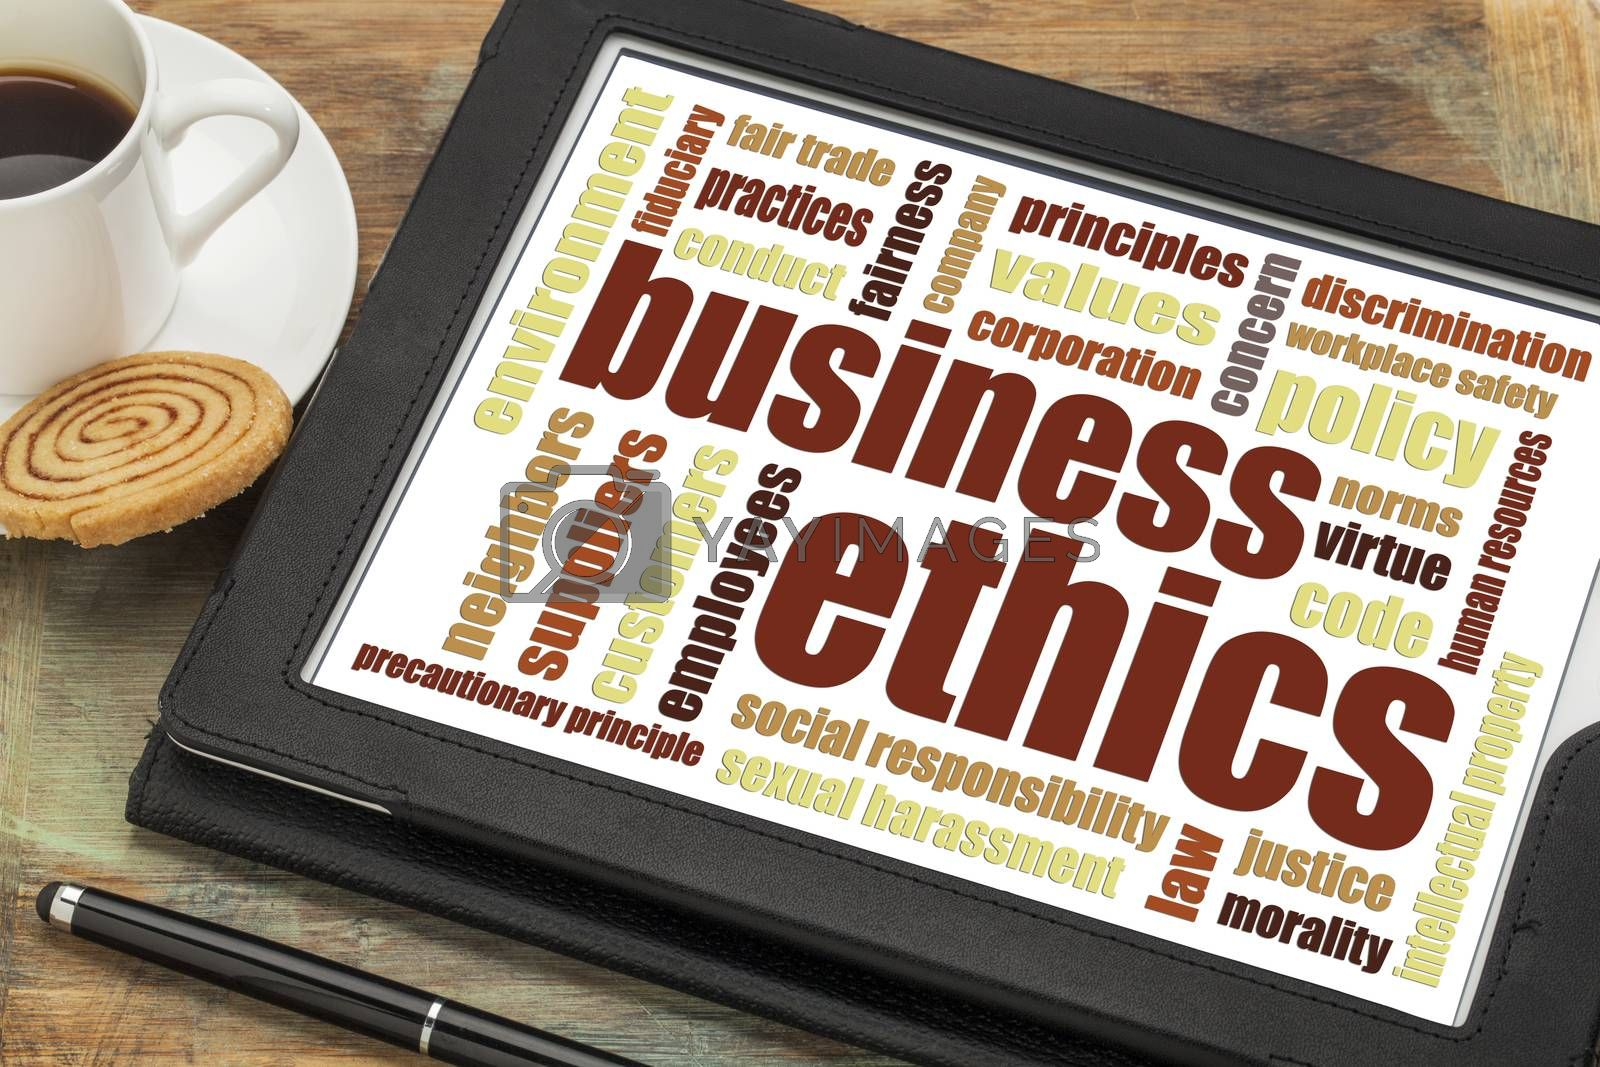 business ethics word cloud on a digital tablet with cup of coffee